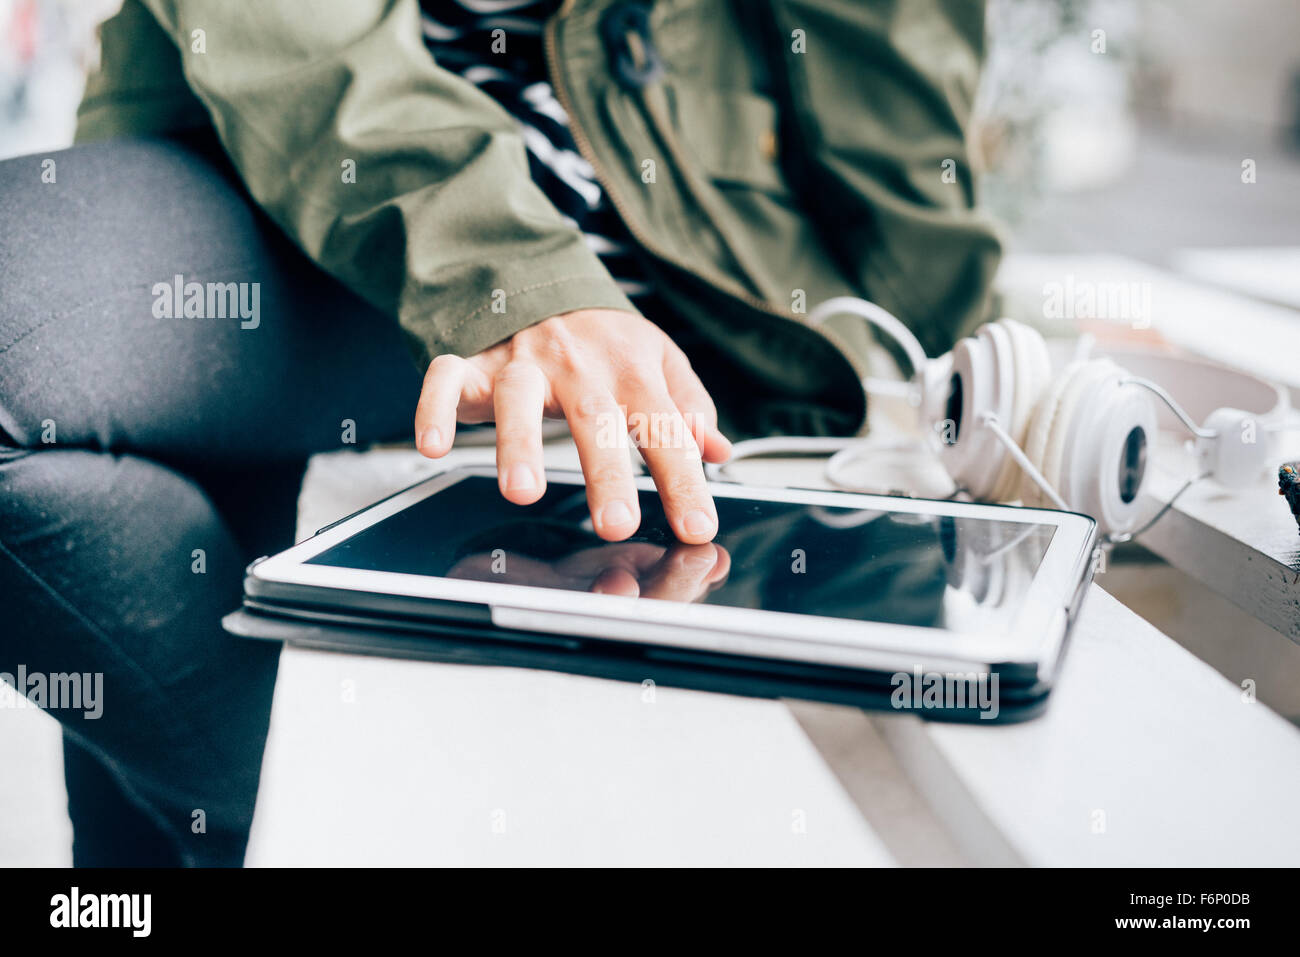 Close up on the hand of a young handsome woman tapping the screen of a laptop - technology, communication, social - Stock Image